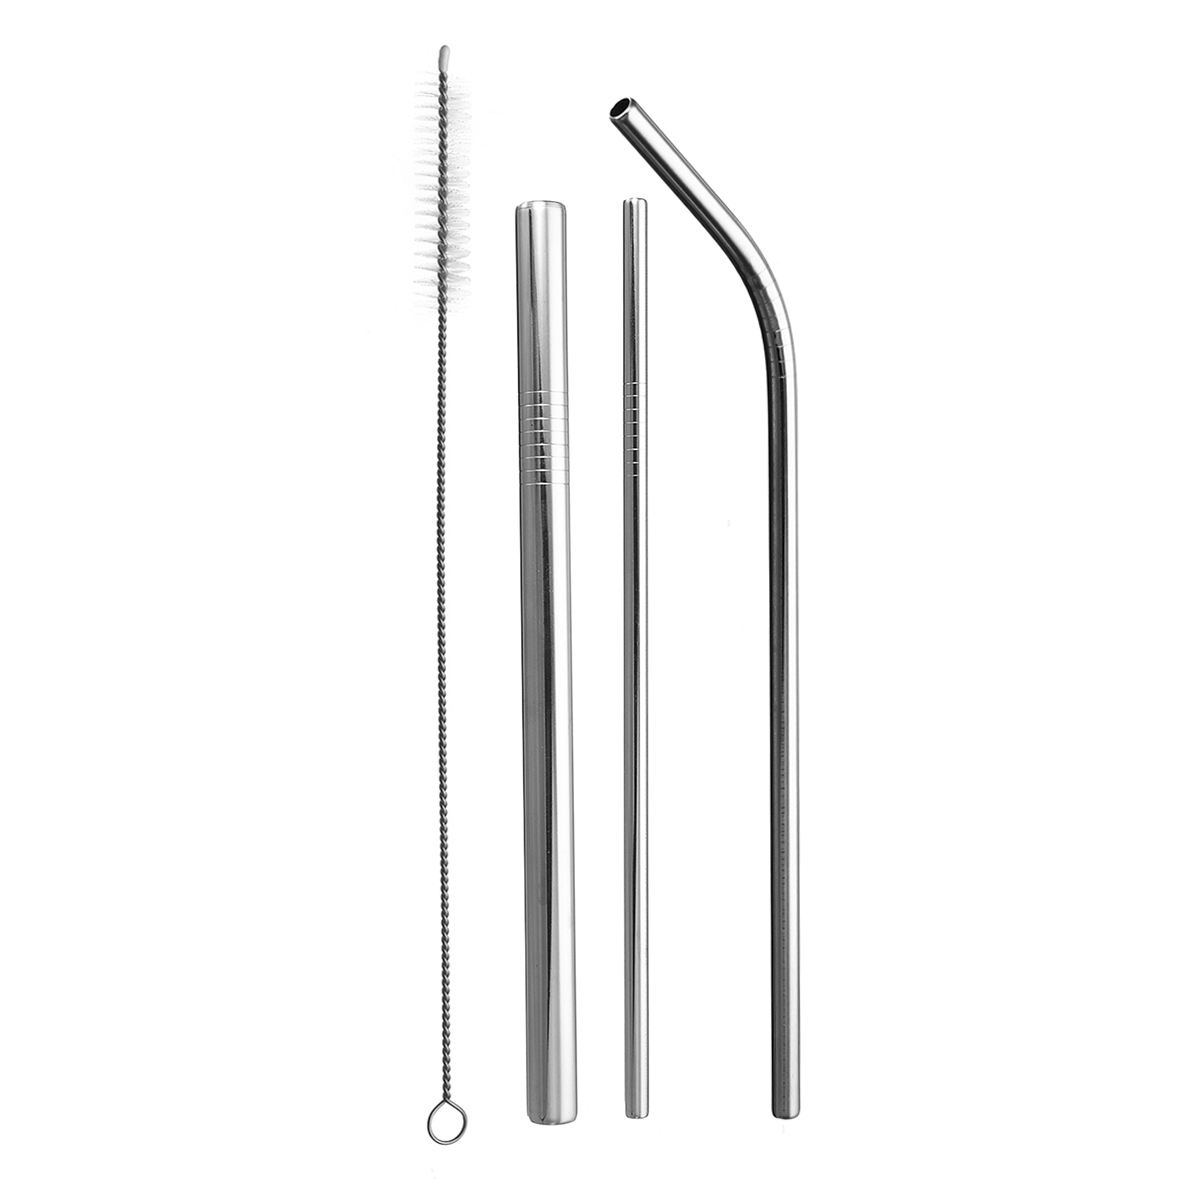 5 Pcs Stainless Steel Straw Cleaning Brush Metal Reusable Friendly Drinking Straws 215mm With Bag